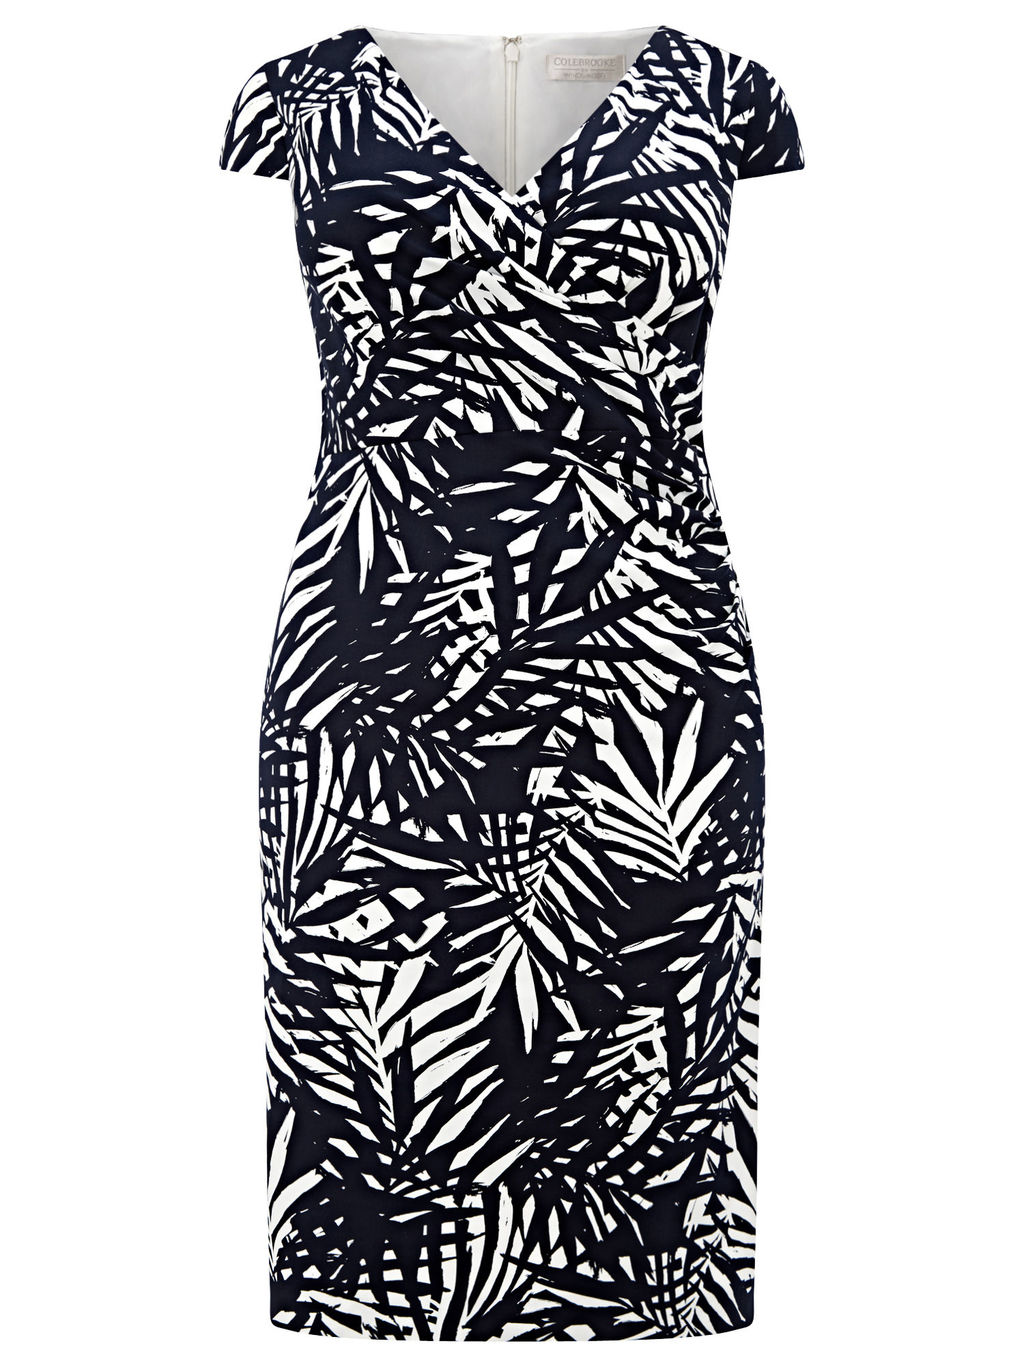 Palm Leaf Printed Dress - style: shift; neckline: low v-neck; sleeve style: capped; fit: tailored/fitted; secondary colour: white; predominant colour: navy; length: on the knee; fibres: cotton - stretch; occasions: occasion; sleeve length: short sleeve; texture group: jersey - clingy; pattern type: fabric; pattern size: big & busy; pattern: florals; season: s/s 2016; wardrobe: event